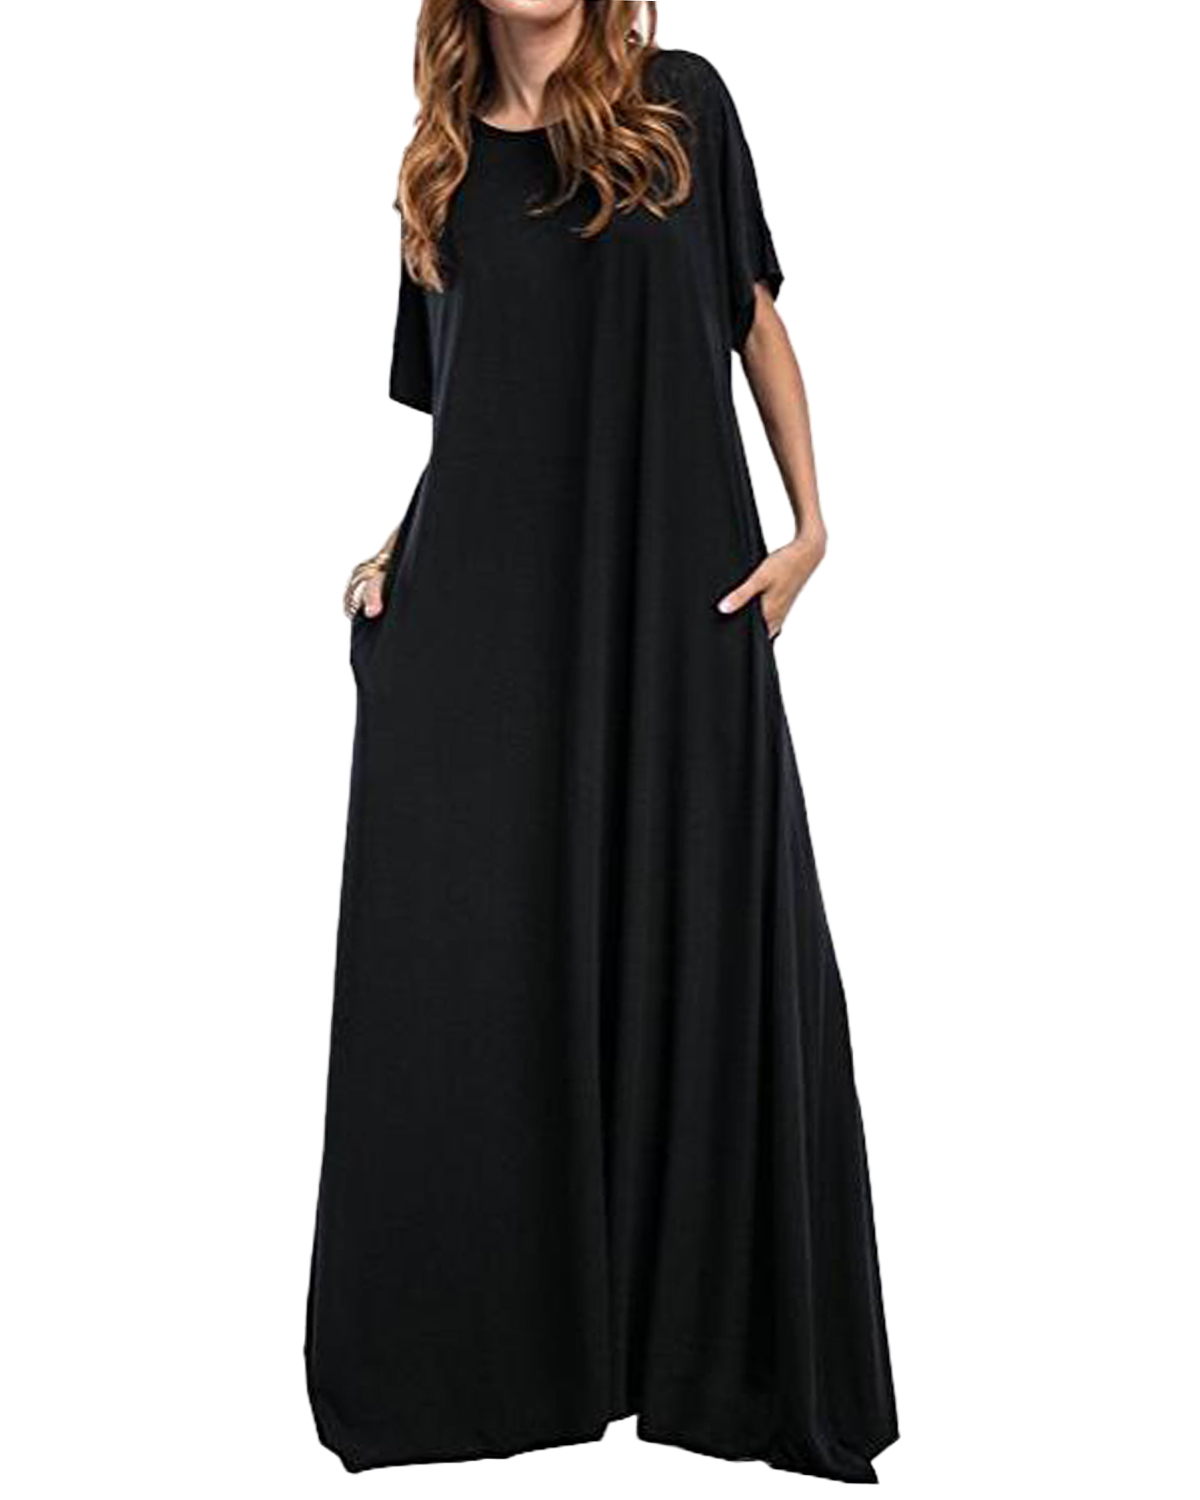 Women Long <font><b>Maxi</b></font> Dress ZANZEA 2019 Half Sleeve Solid Round Neck <font><b>Vintage</b></font> Casual Loose Long Elegant Robe Bodycon <font><b>Vestidos</b></font> Plus Size image